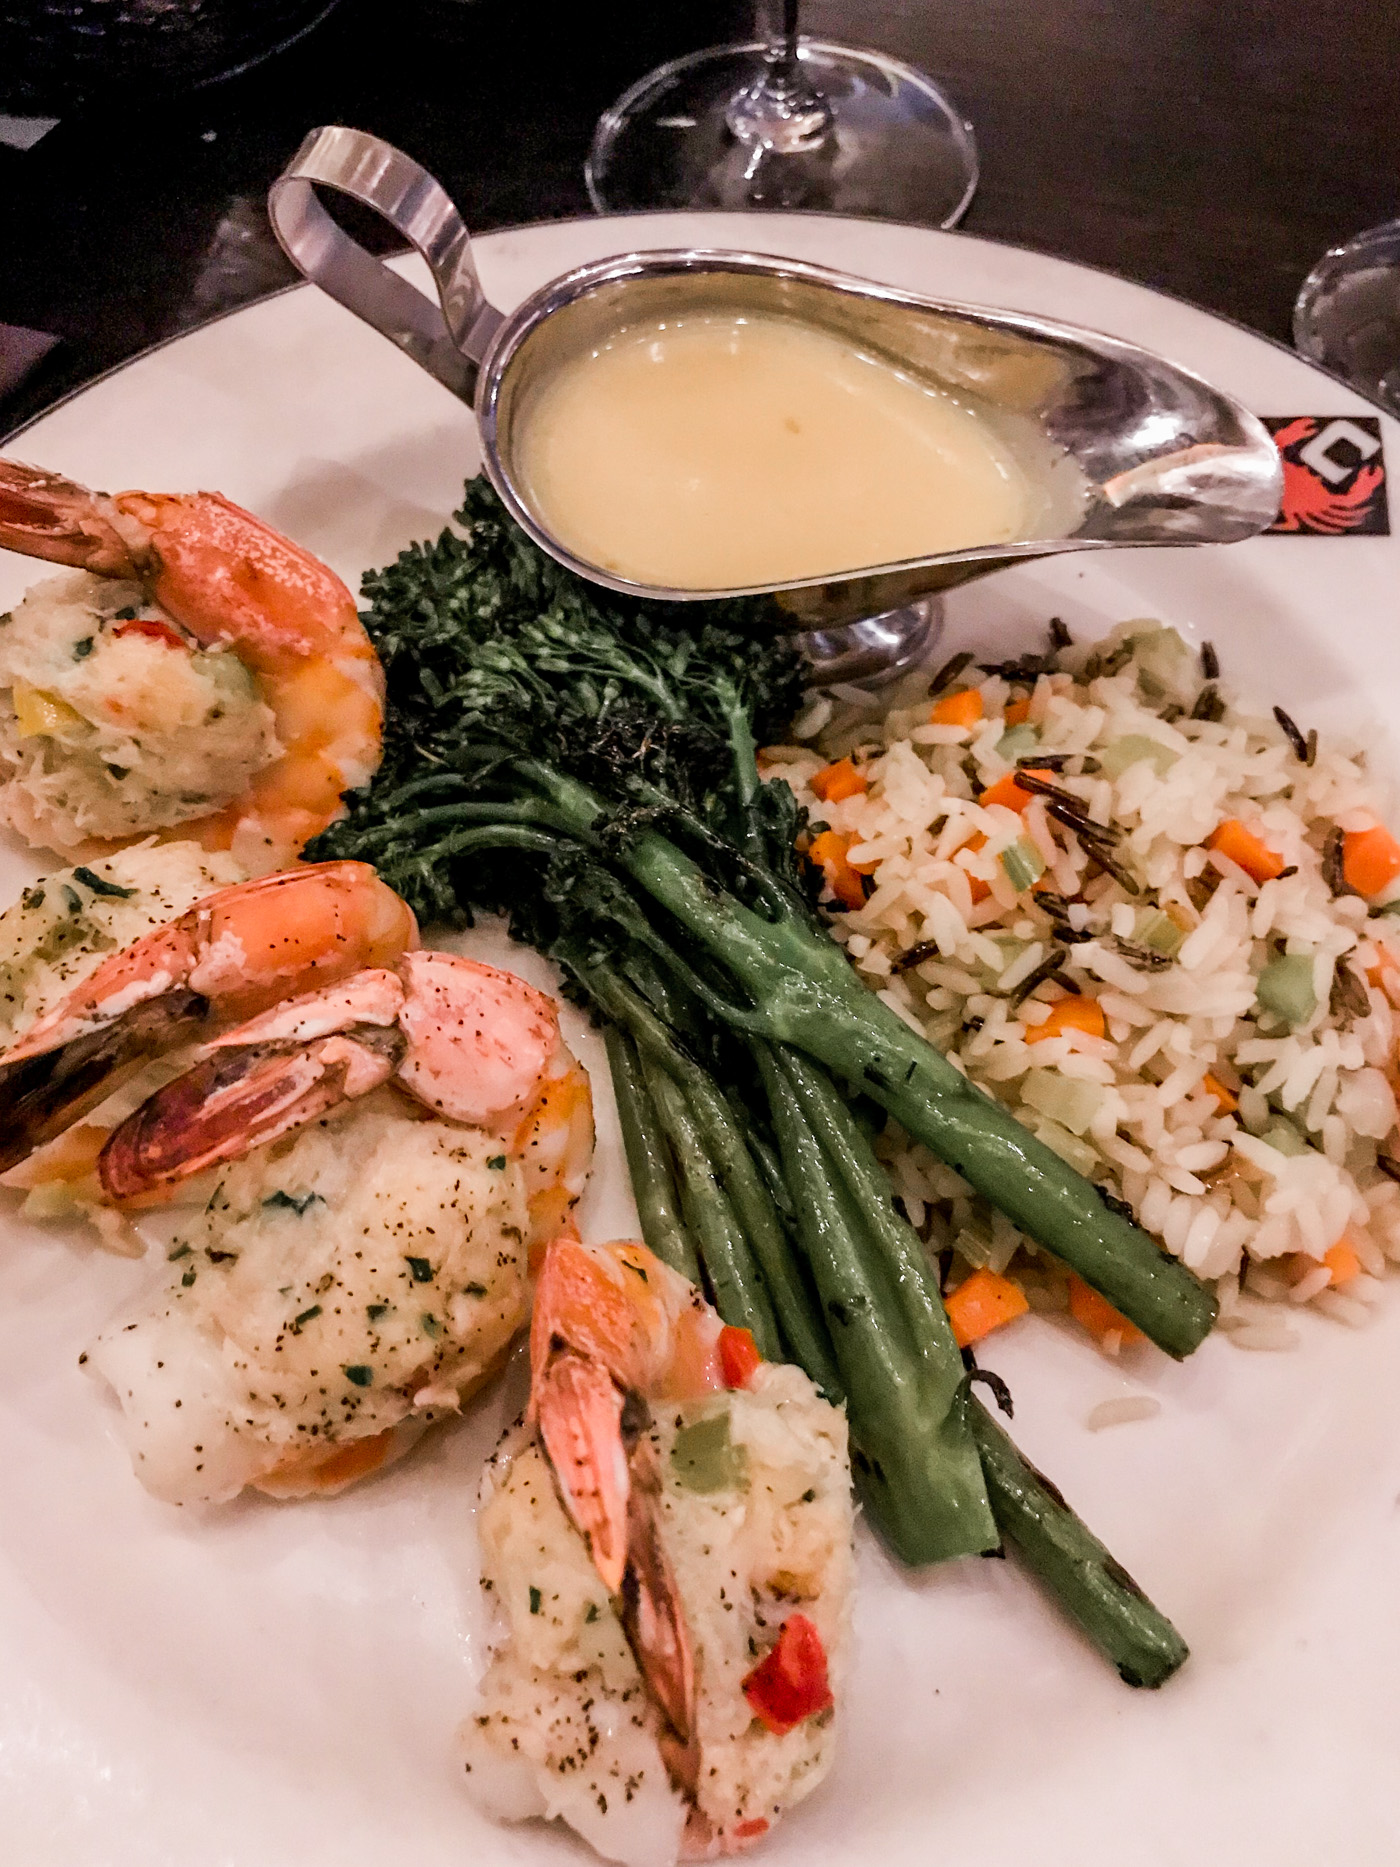 Crab-stuffed prawns from Chandler's Crabhouse in Seattle